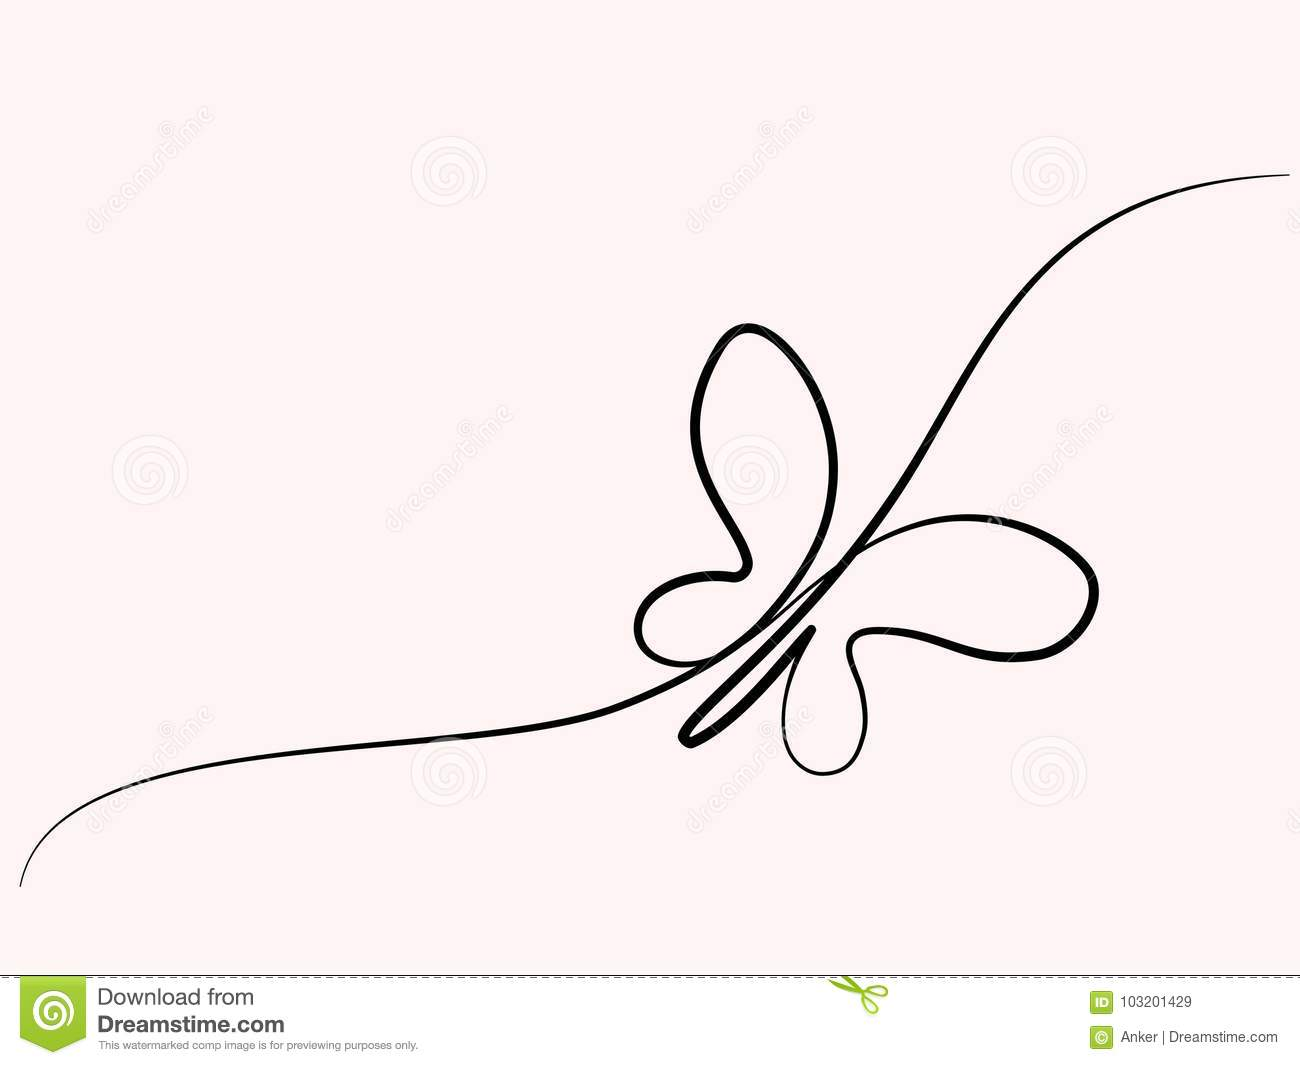 Vector Drawing Lines Xbox One : Continuous cartoons illustrations vector stock images